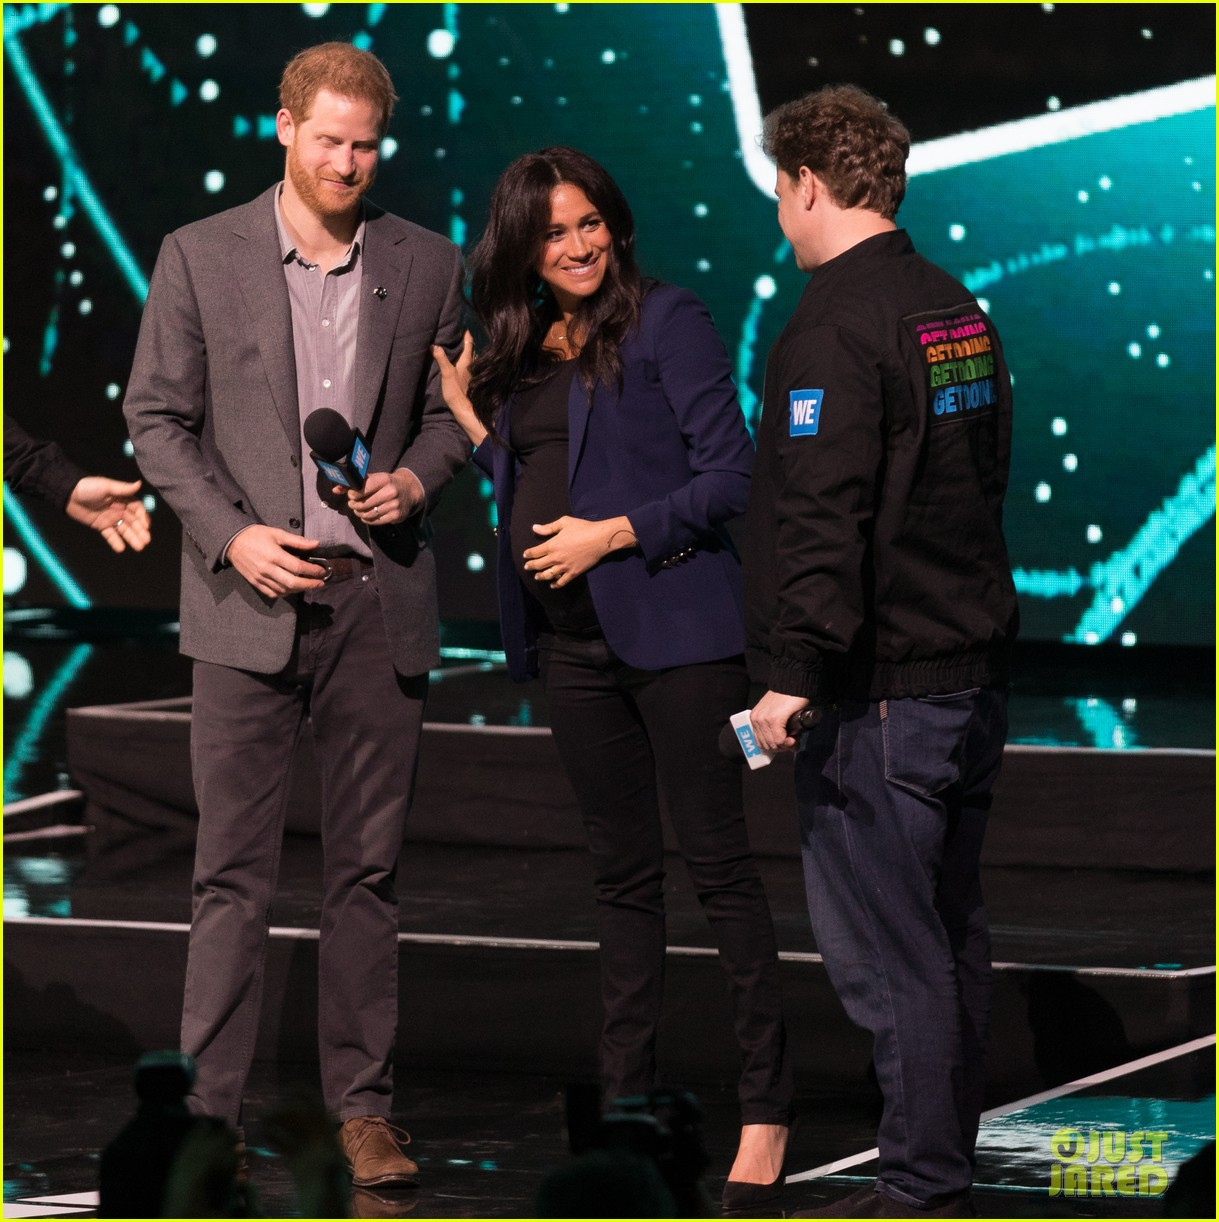 prince harry drags duchess meghan markle on stage we day 23